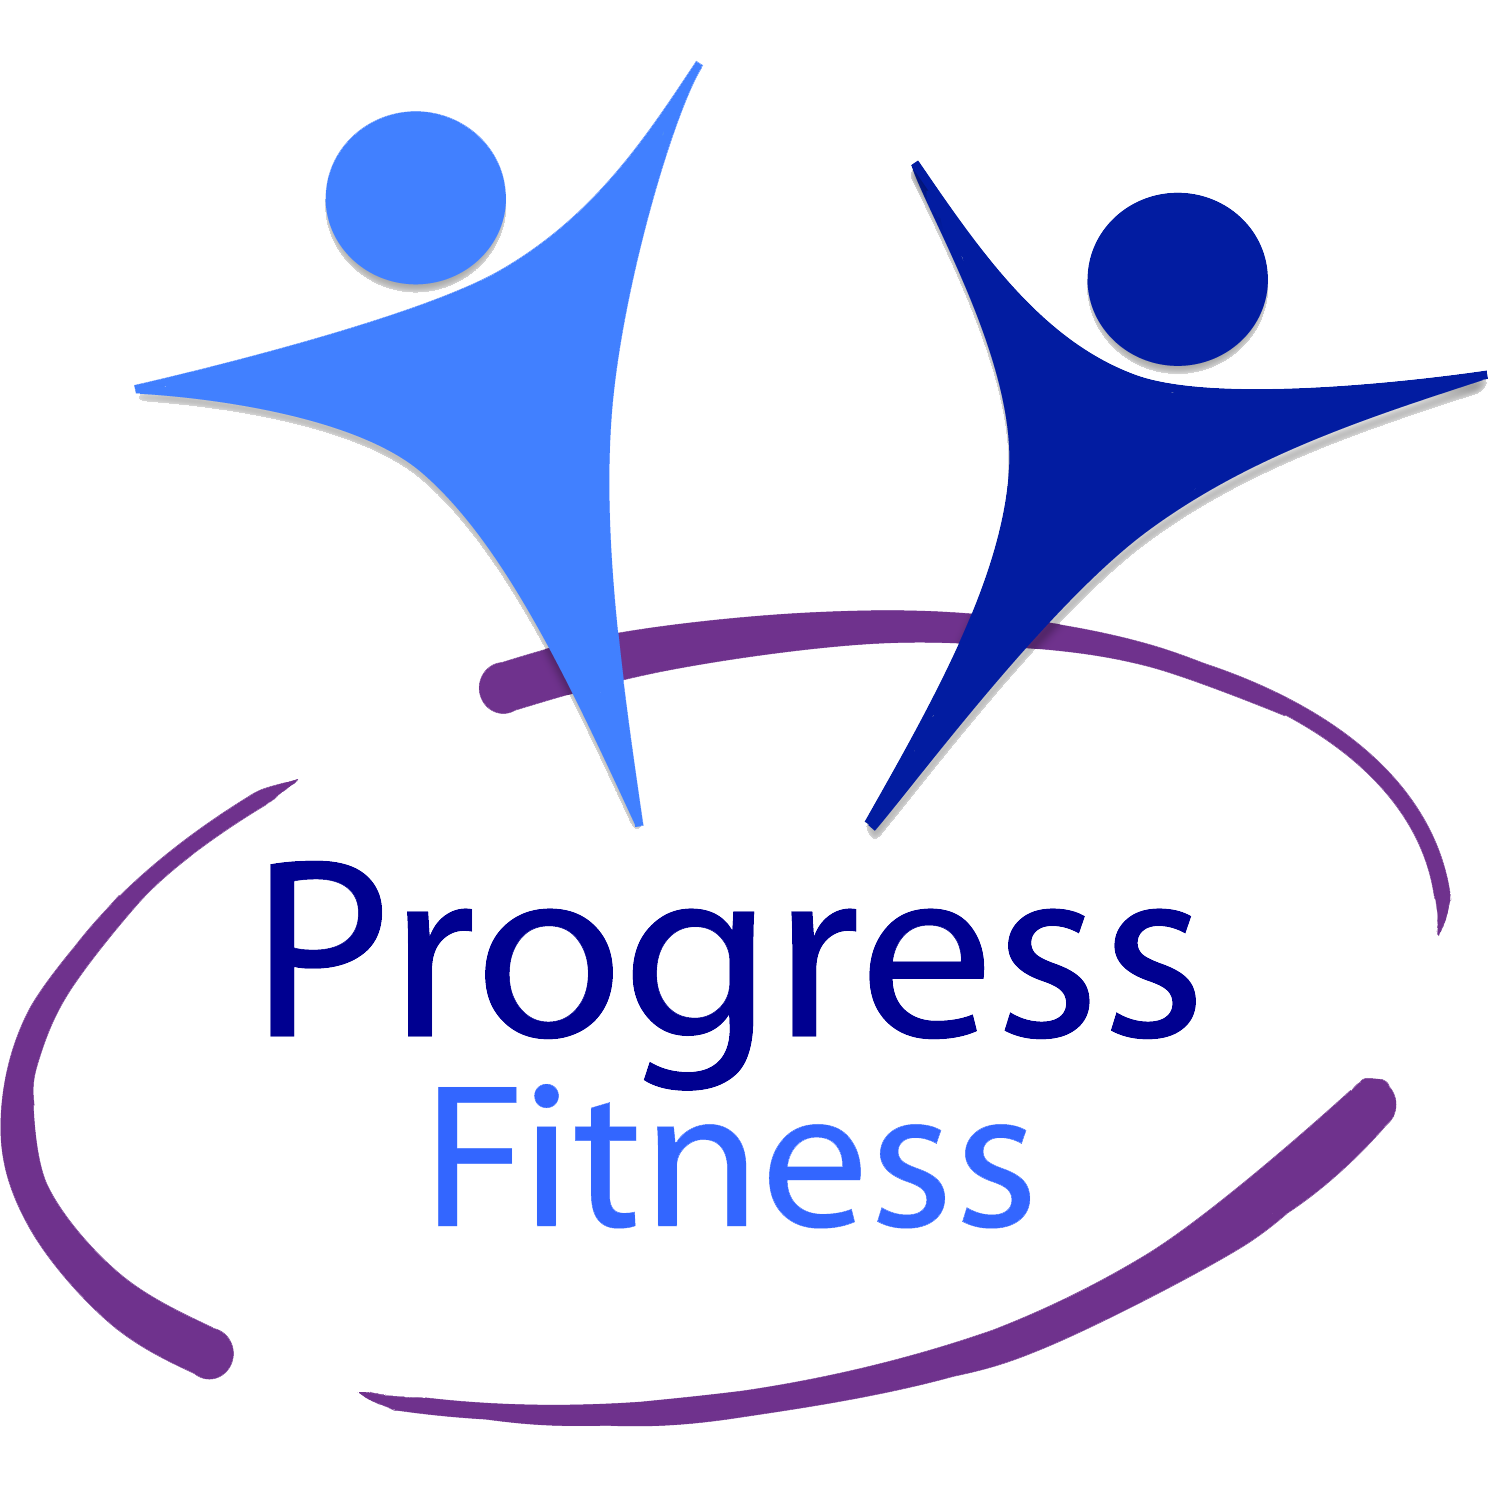 Email Lynne: progressfitness@live.co.uk